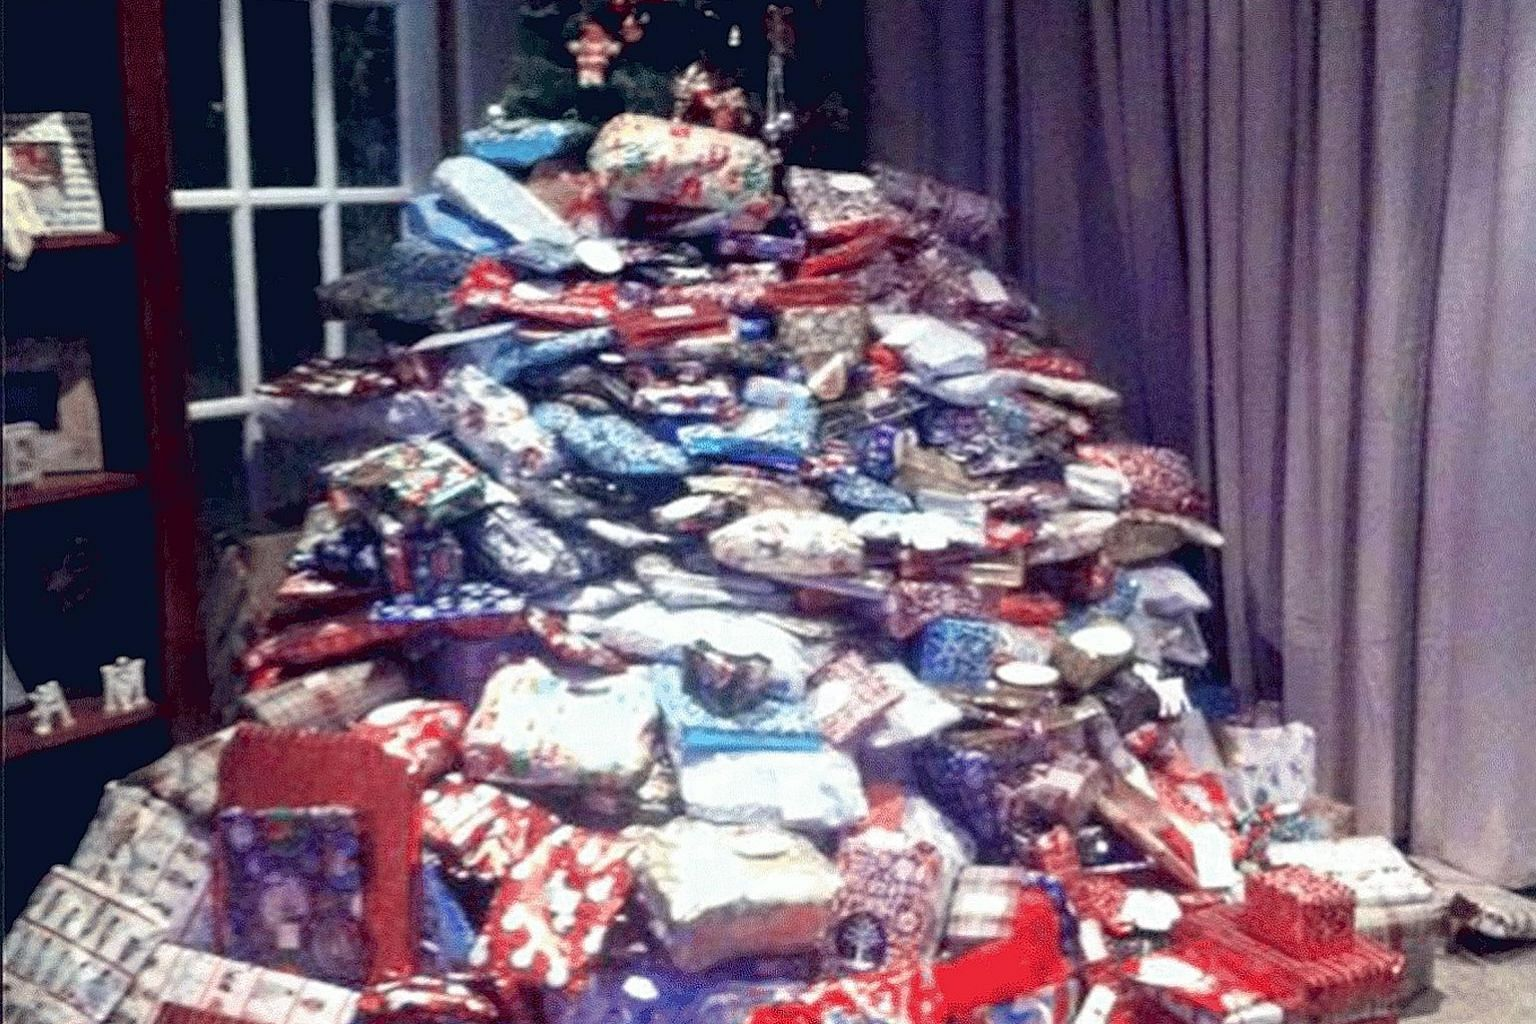 Ms Emma Tapping, whose picture of a mountain of Christmas gifts went viral last year, has shared an image of an even bigger pile this year.